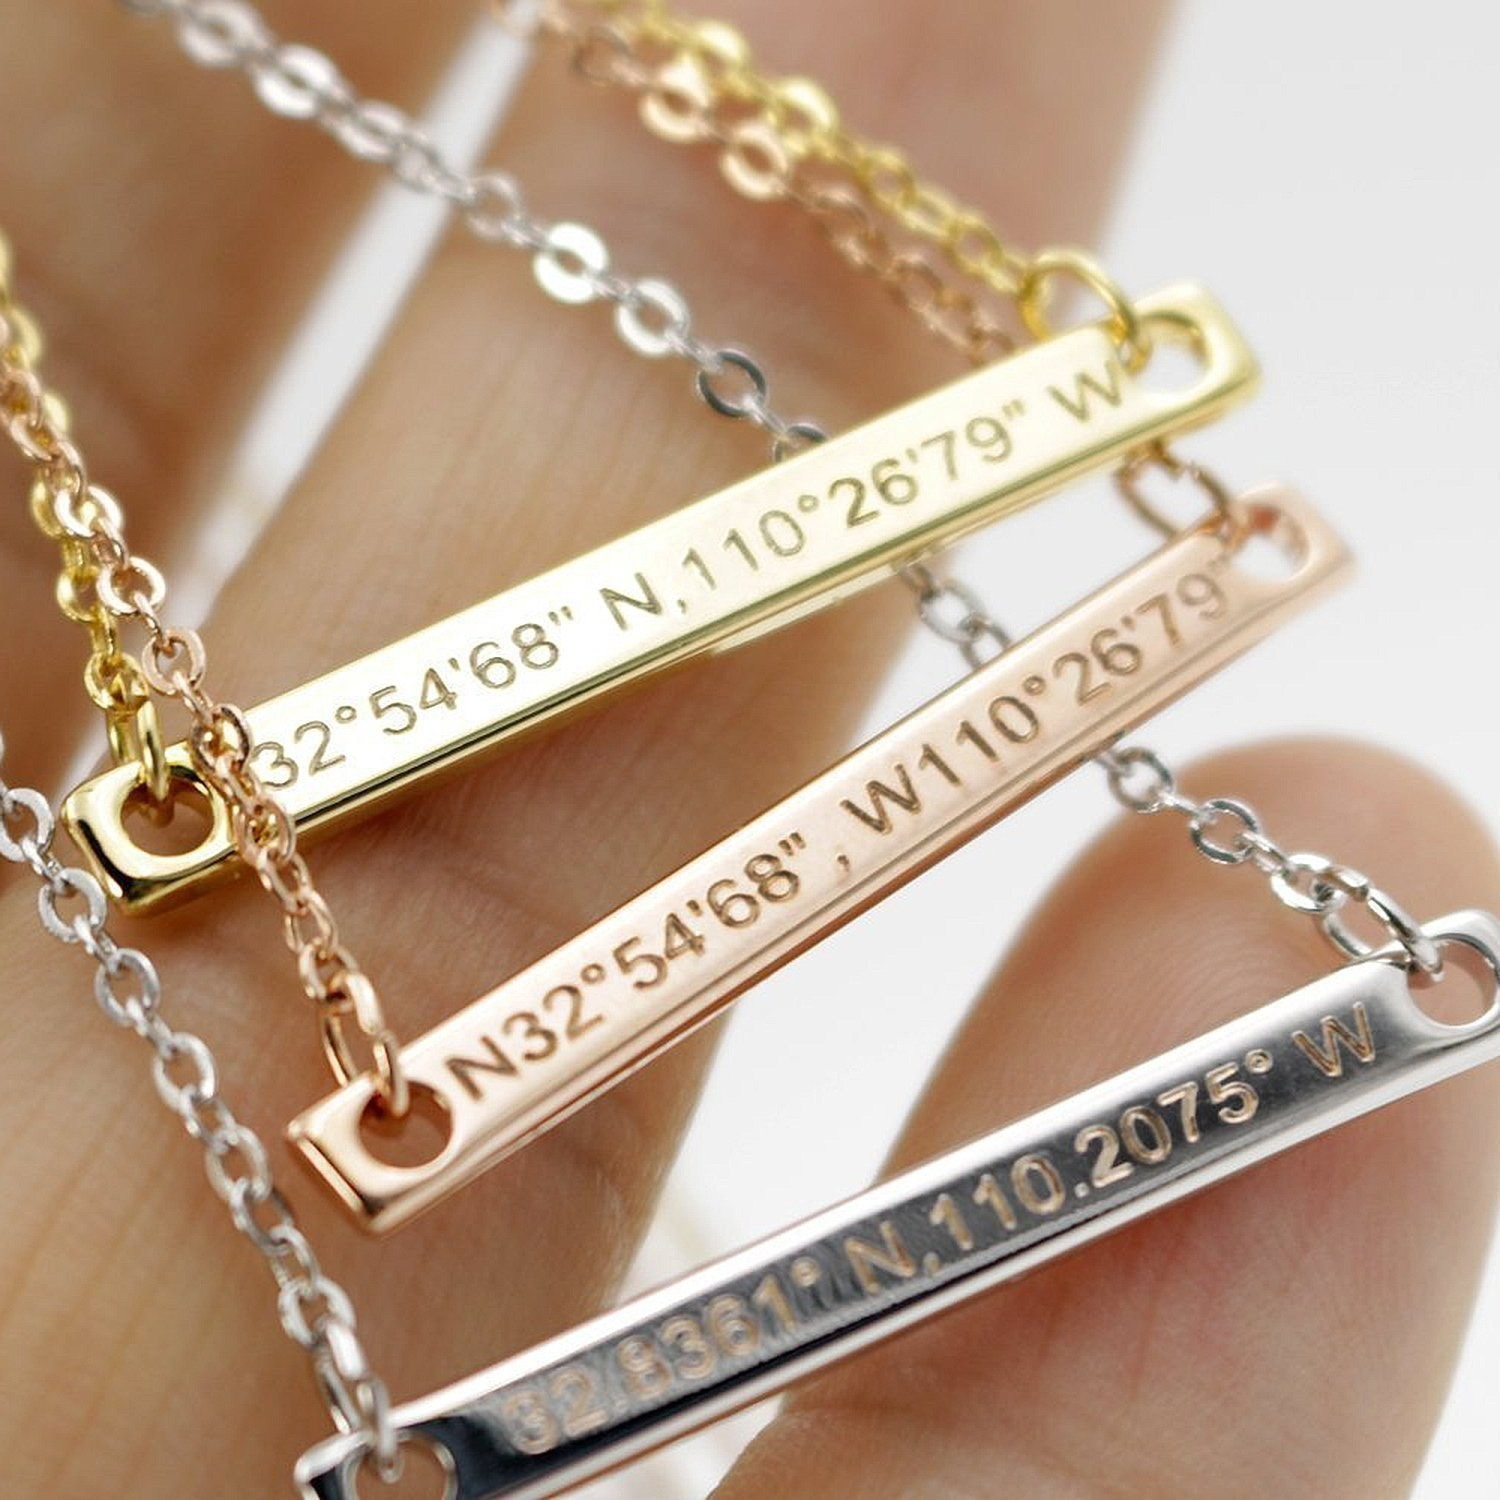 """All you need to do is enter your coordinates when placing your order! Promising review: """"My best friend was going to the state championship for our school so I got her this and engraved it with her catchphrase and it was perfect! She loved it and it's really durable! She plays with it on everyday and it's still in perfect condition!"""" —DabneyGet it from Amazon for $18.98 (available in three colors)."""